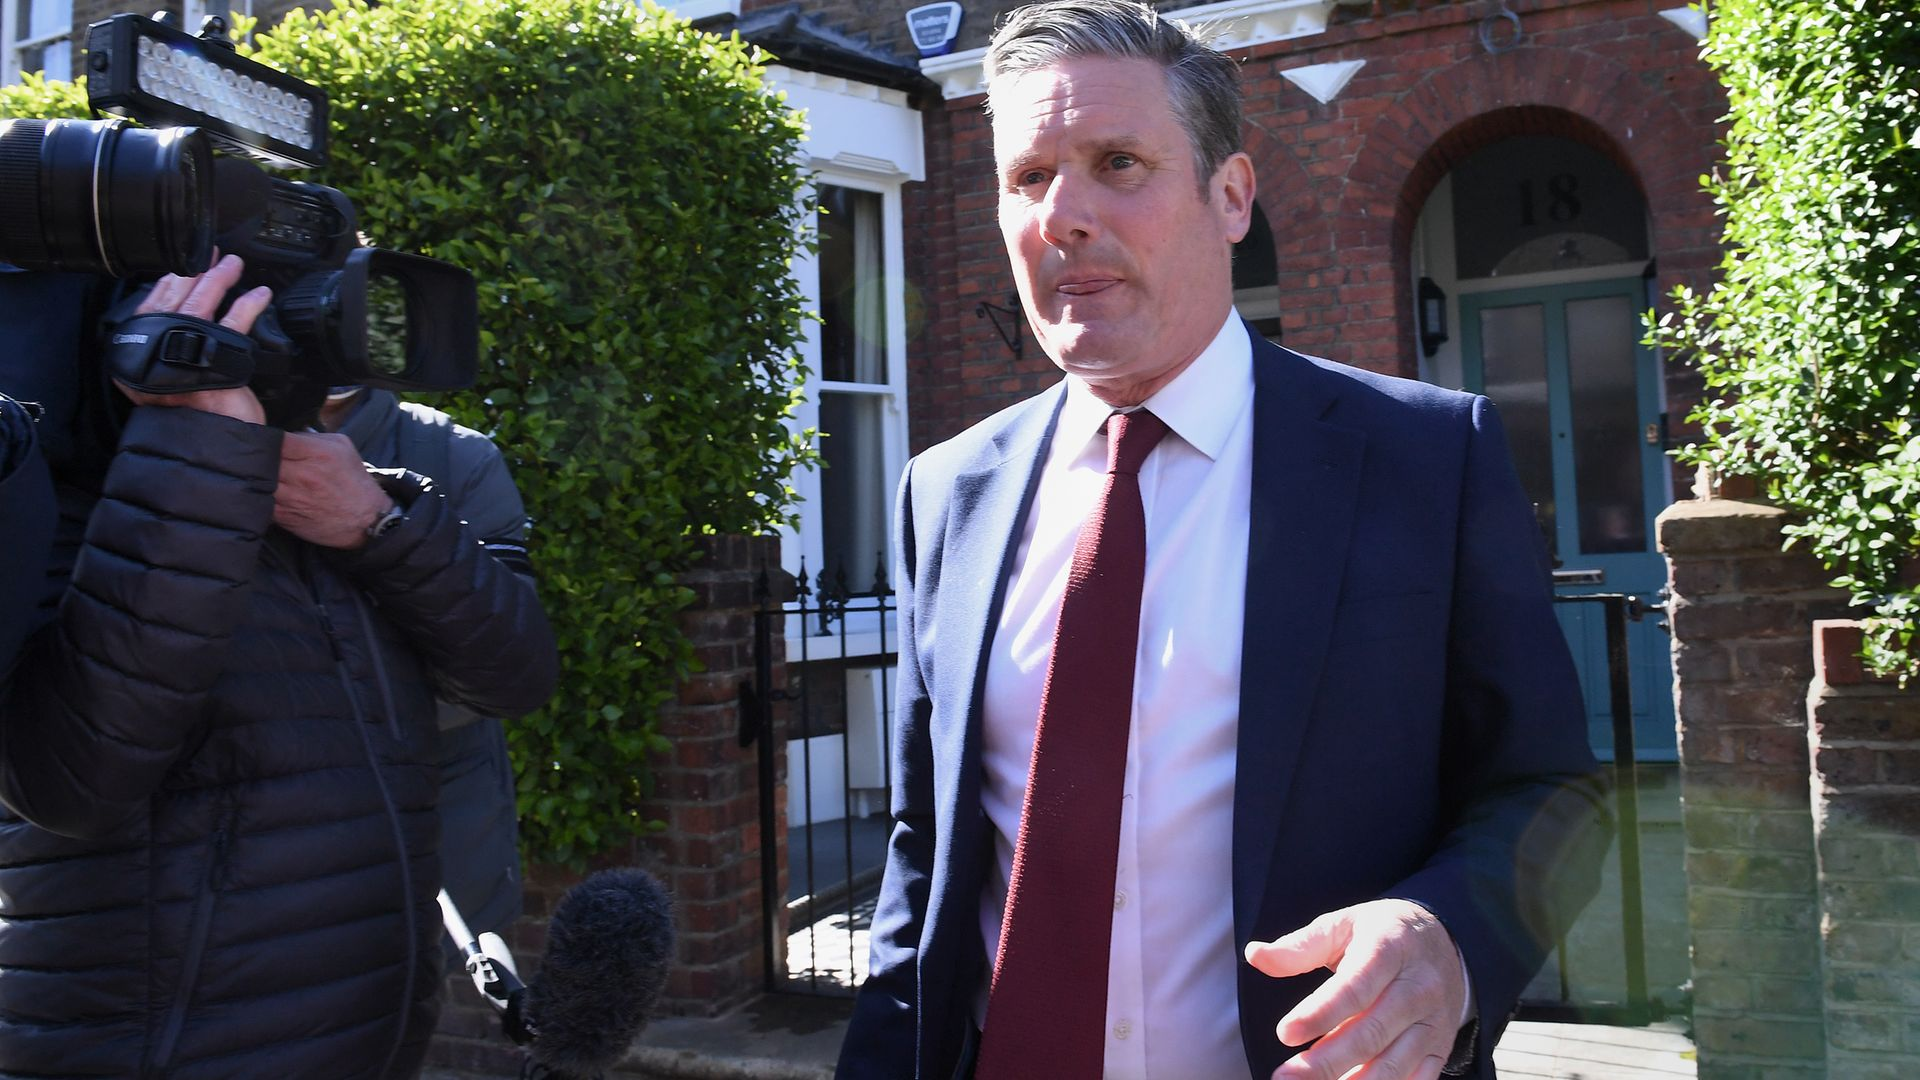 Labour leader Sir Keir Starmer leaving his north London home following the result in the Hartlepool parliamentary by-election - Credit: PA